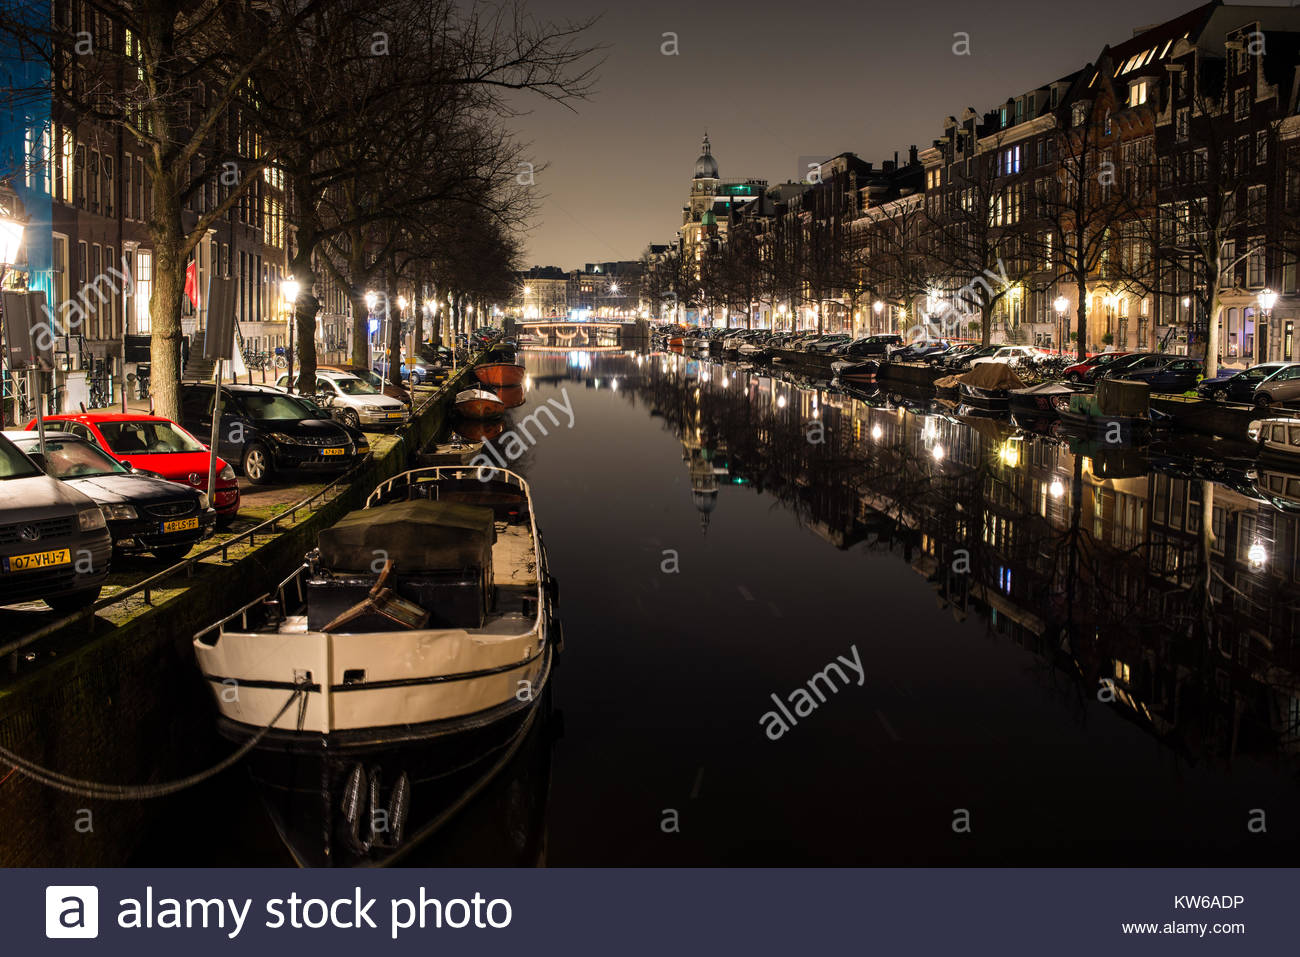 canal scene at night in Amsterdam Holland. - Stock Image